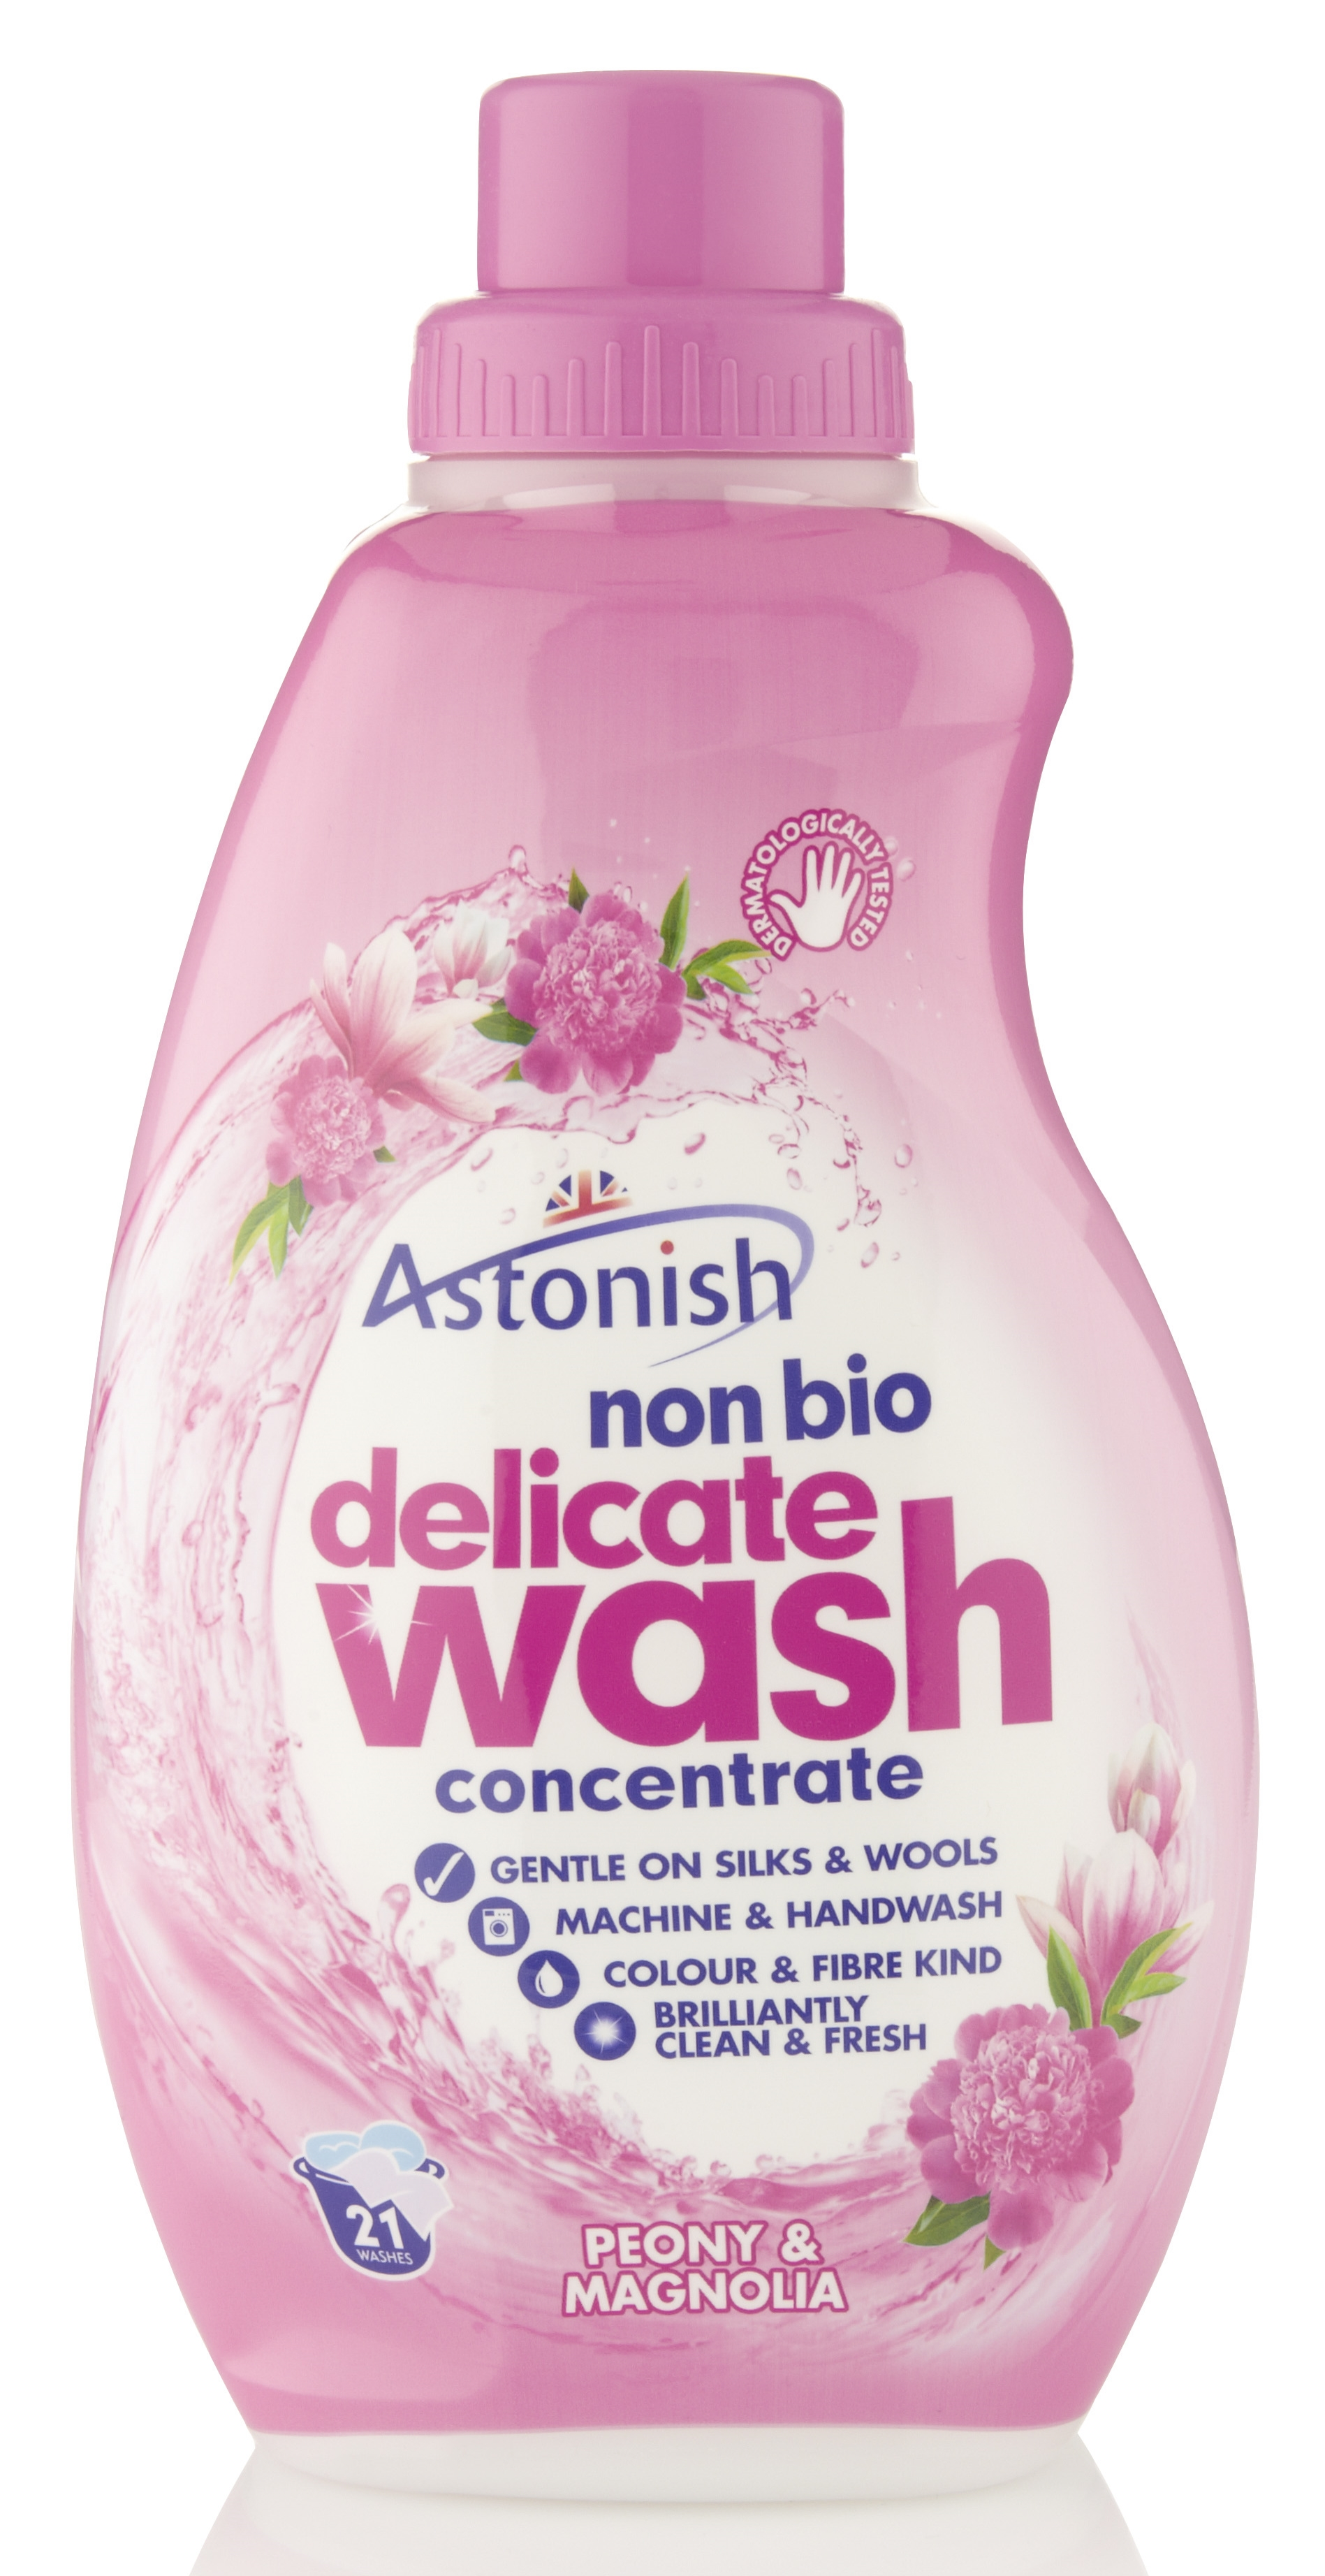 Astonish Laundry Non Bio Delicate Wash Peony & Magnolia 840ml.jpg